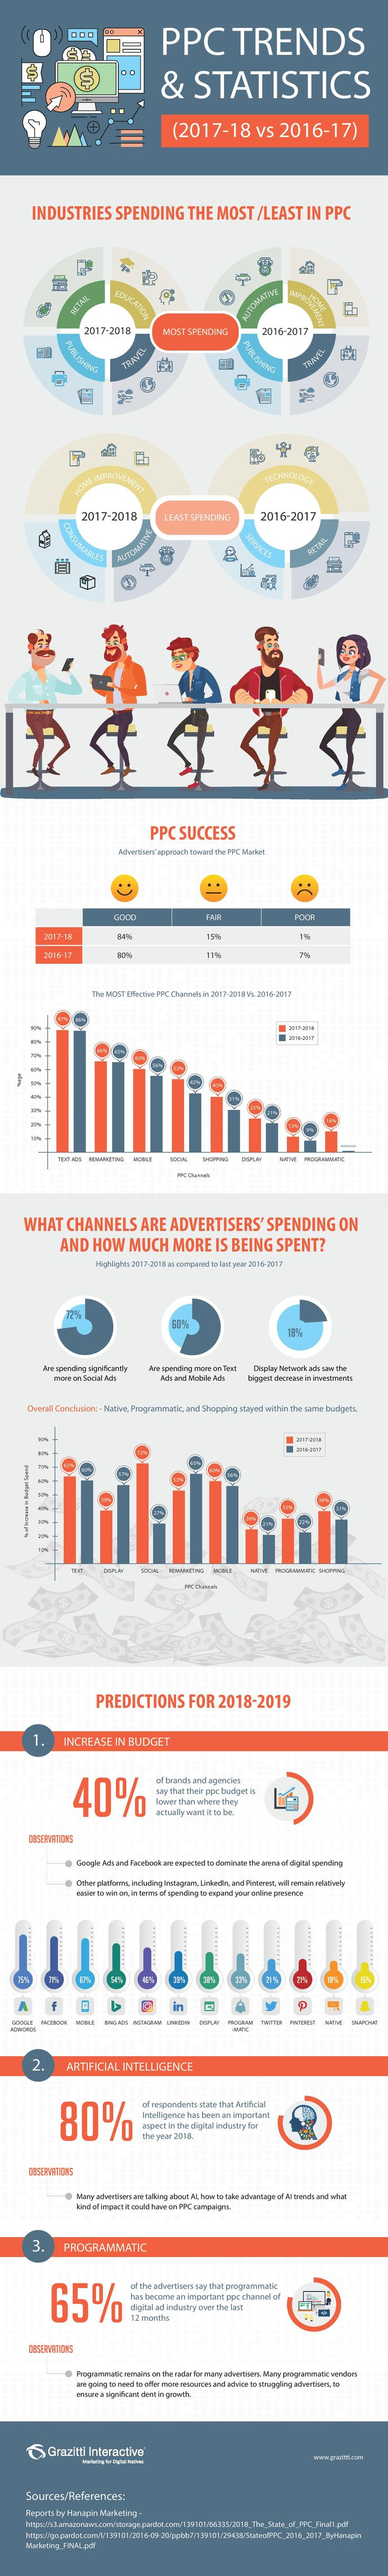 Advertising-Infographics-2018-PPC-Industry-Statistics-Infographic-Social-Media-Today Advertising Infographics : 2018 PPC Industry Statistics [Infographic] | Social Media Today